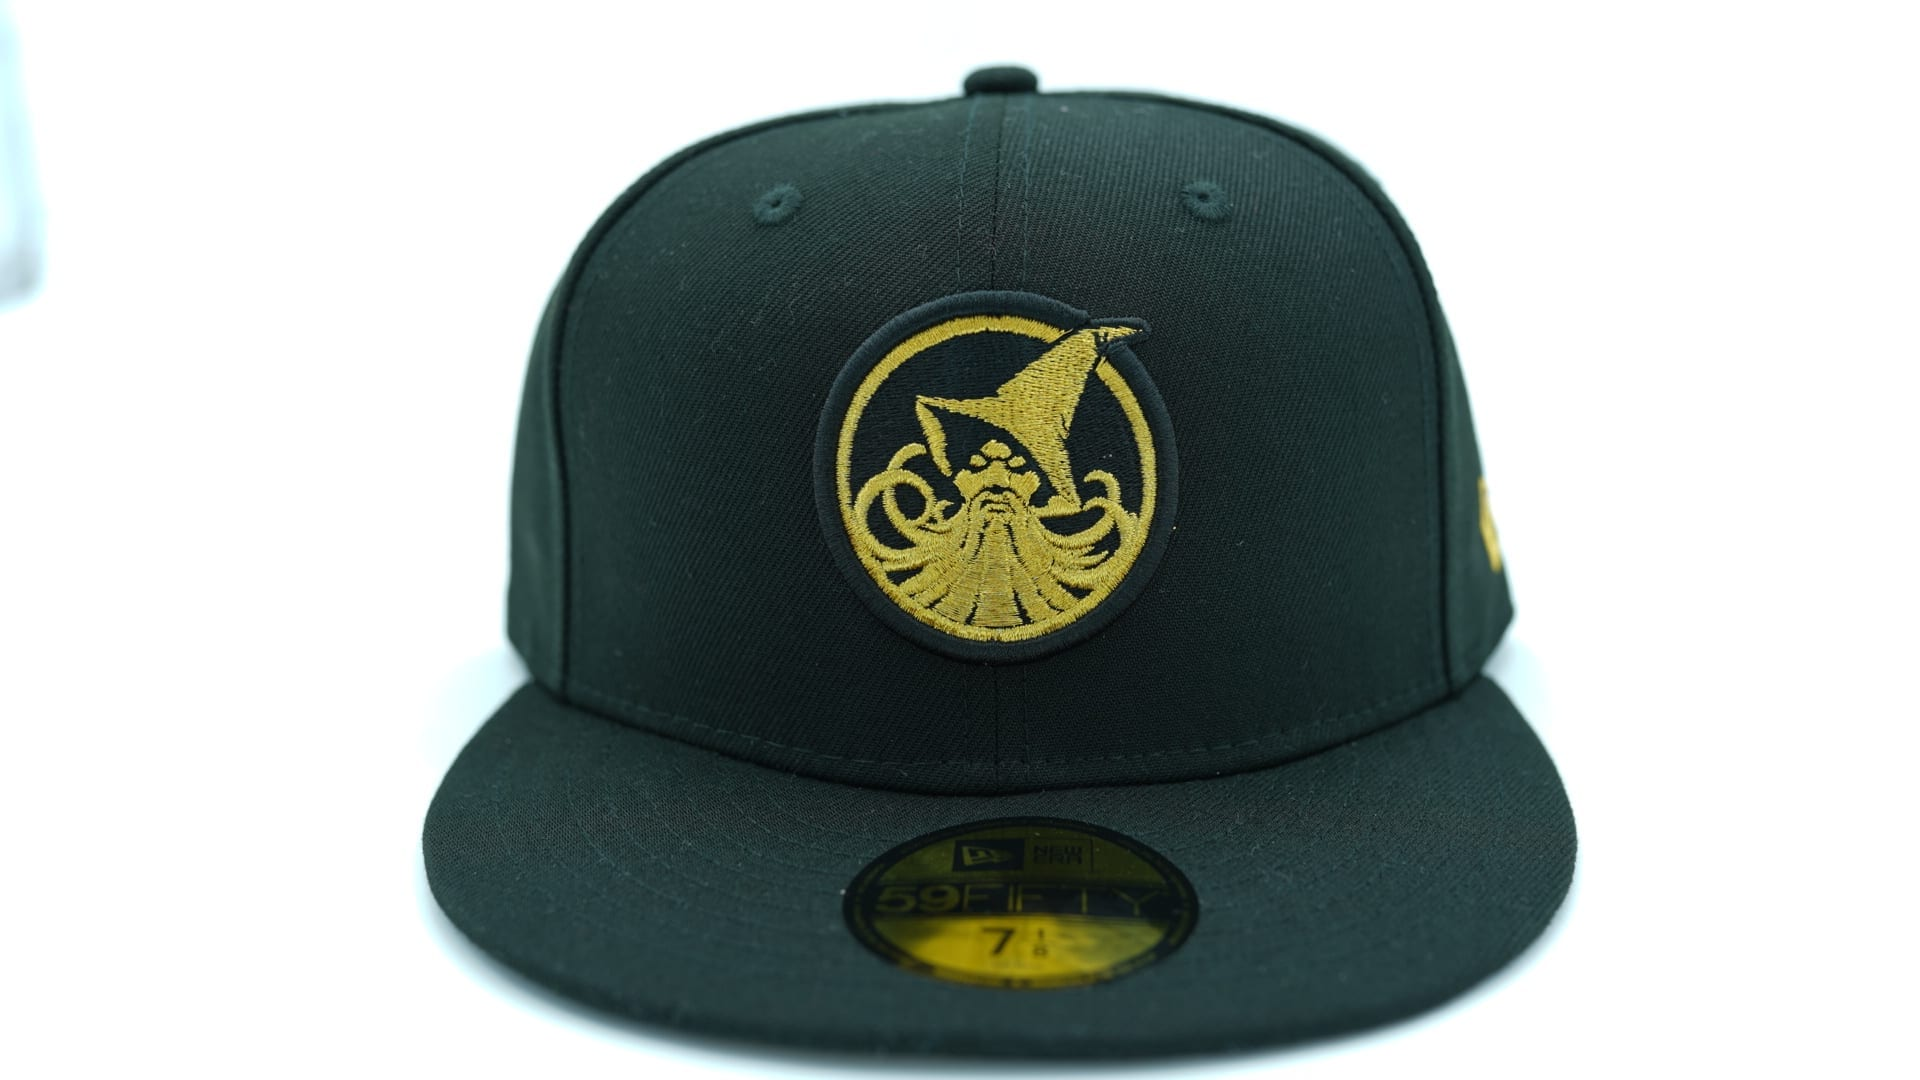 100% authentic 3dab7 0be2a ... hat navy db853 71a22  coupon code for houston texans and oakland  raiders estadio azteca 2016 mexico game 59fifty fitted caps